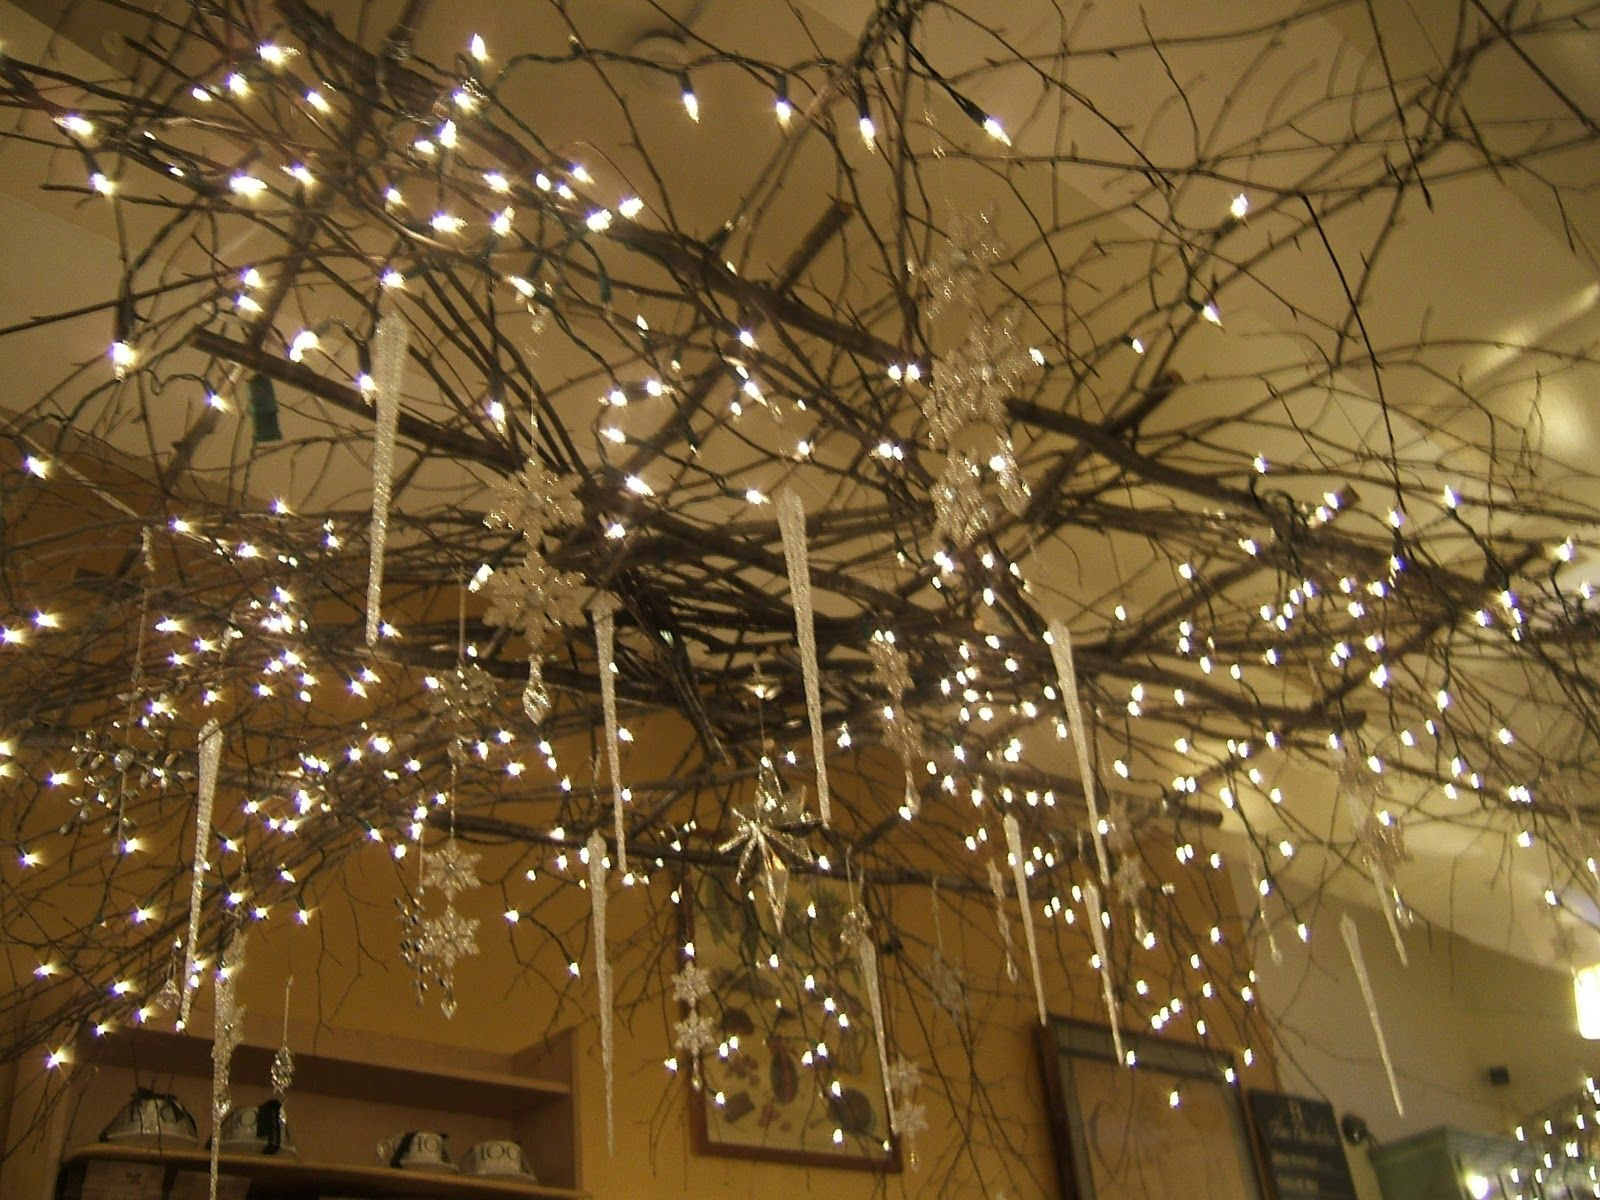 Twig Decorations twig chandelier - google search   at home   pinterest   twig